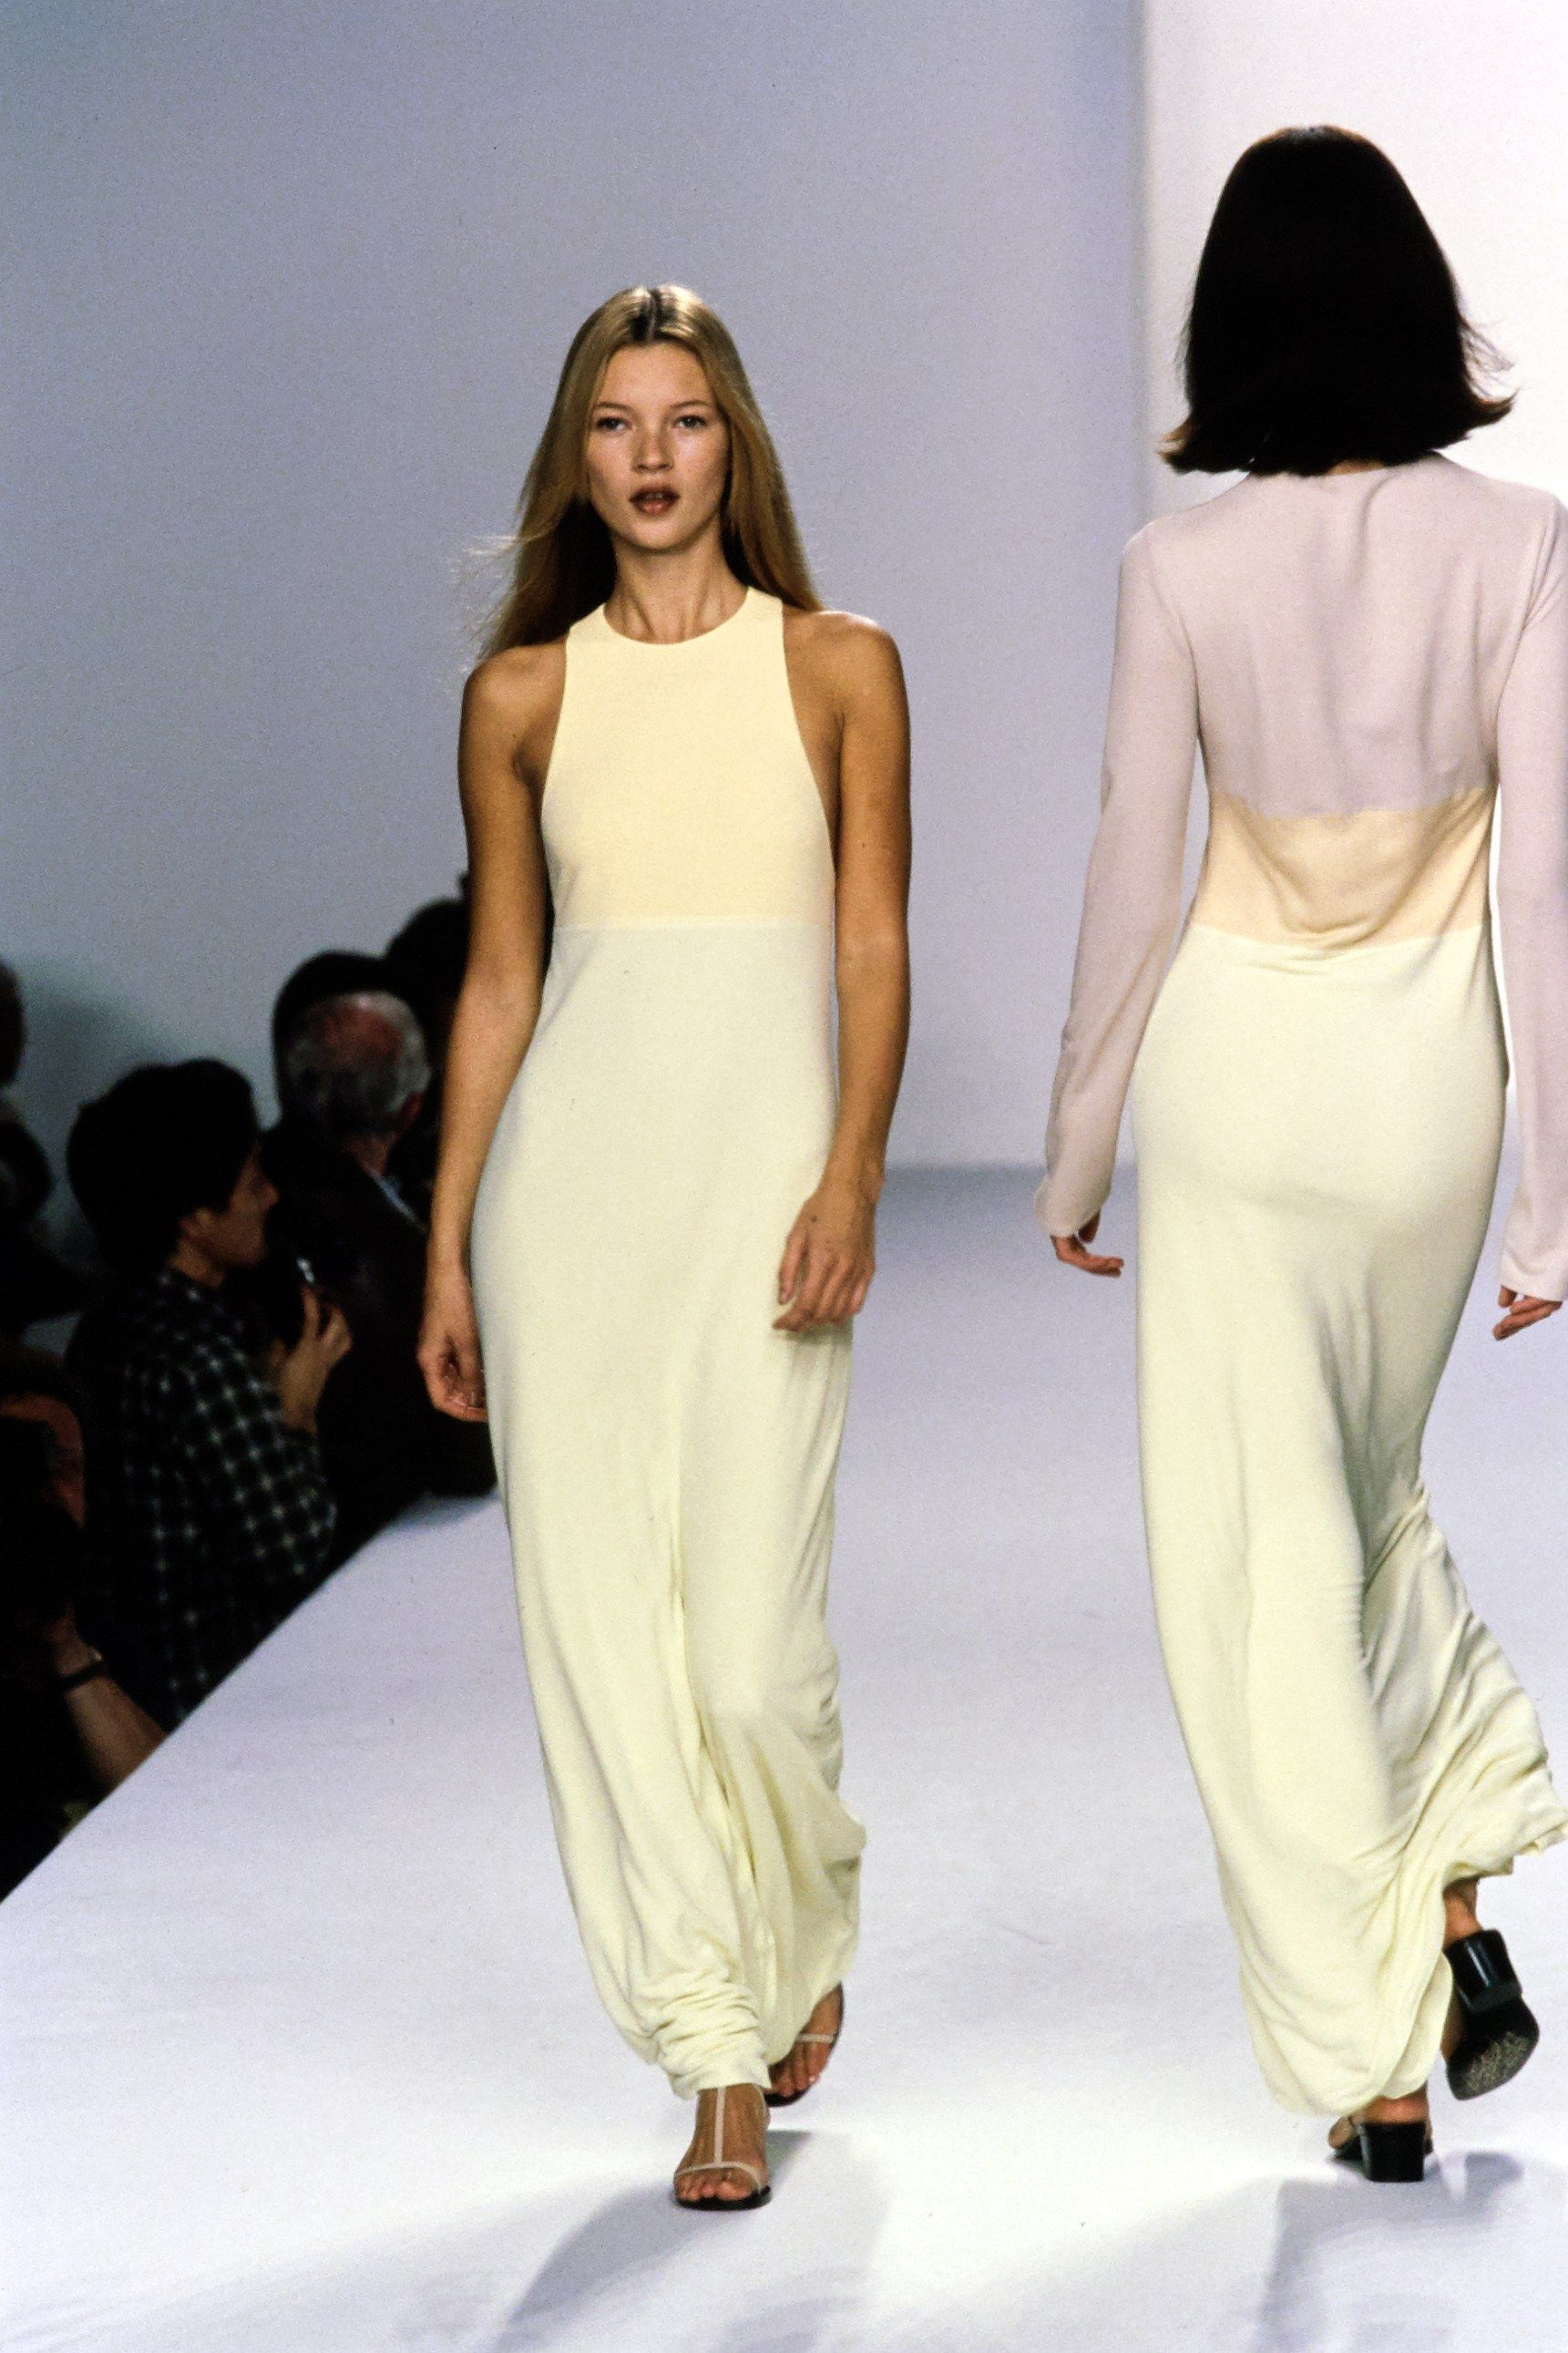 be54fd174c8 See the complete Calvin Klein Spring 1996 collection and 9 more Calvin  Klein shows from the  90s.